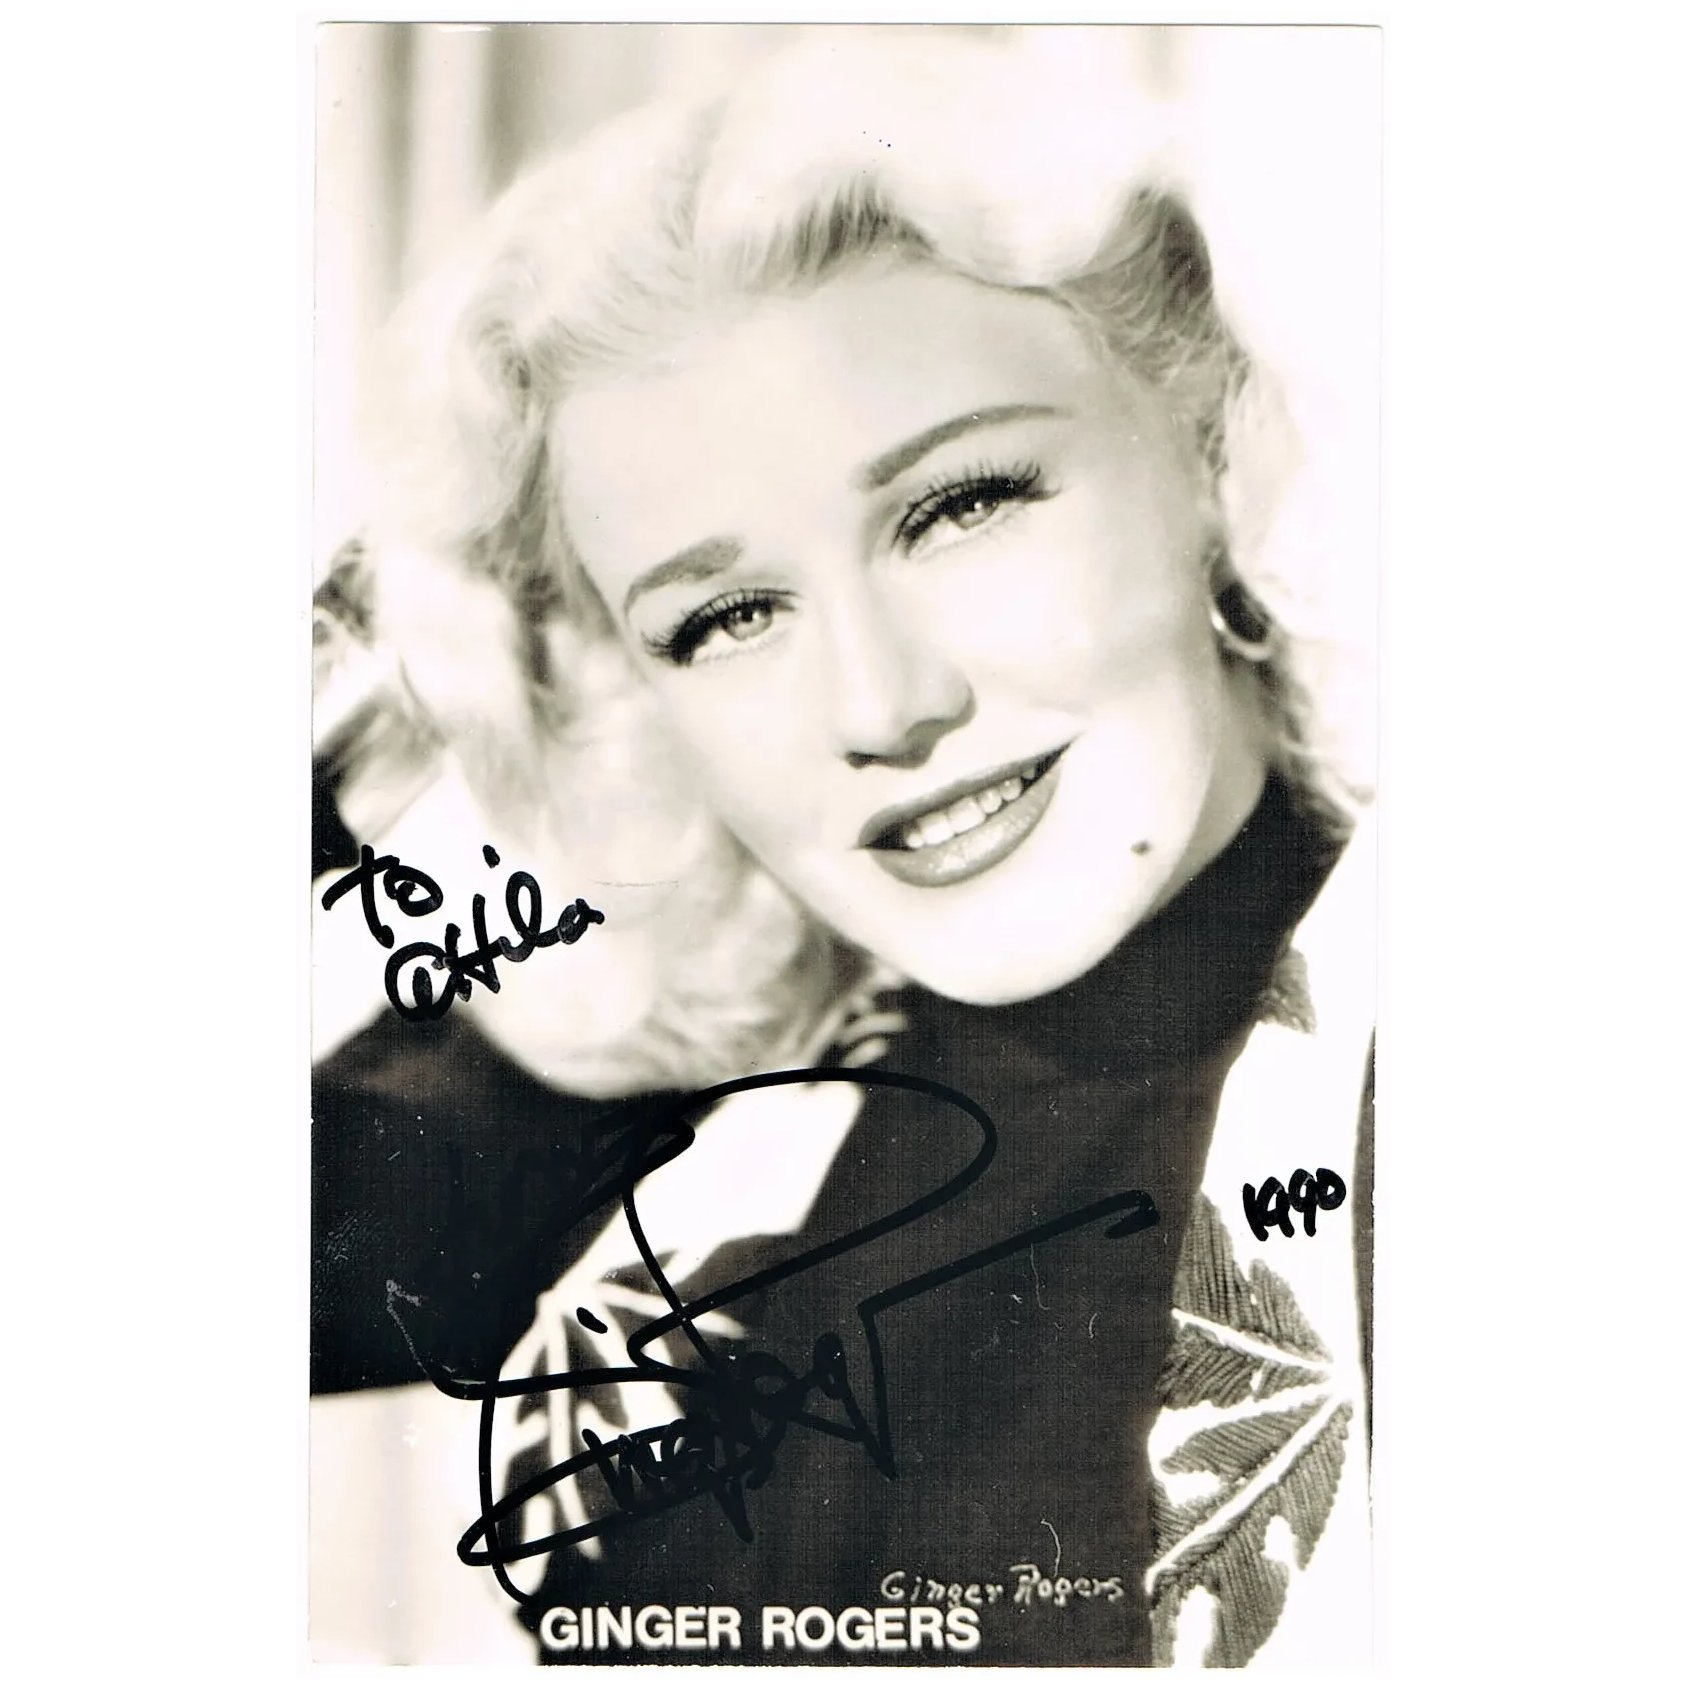 Ginger Rogers Autograph Hand Signed Photo Coa Collect At Curioshop Ruby Lane